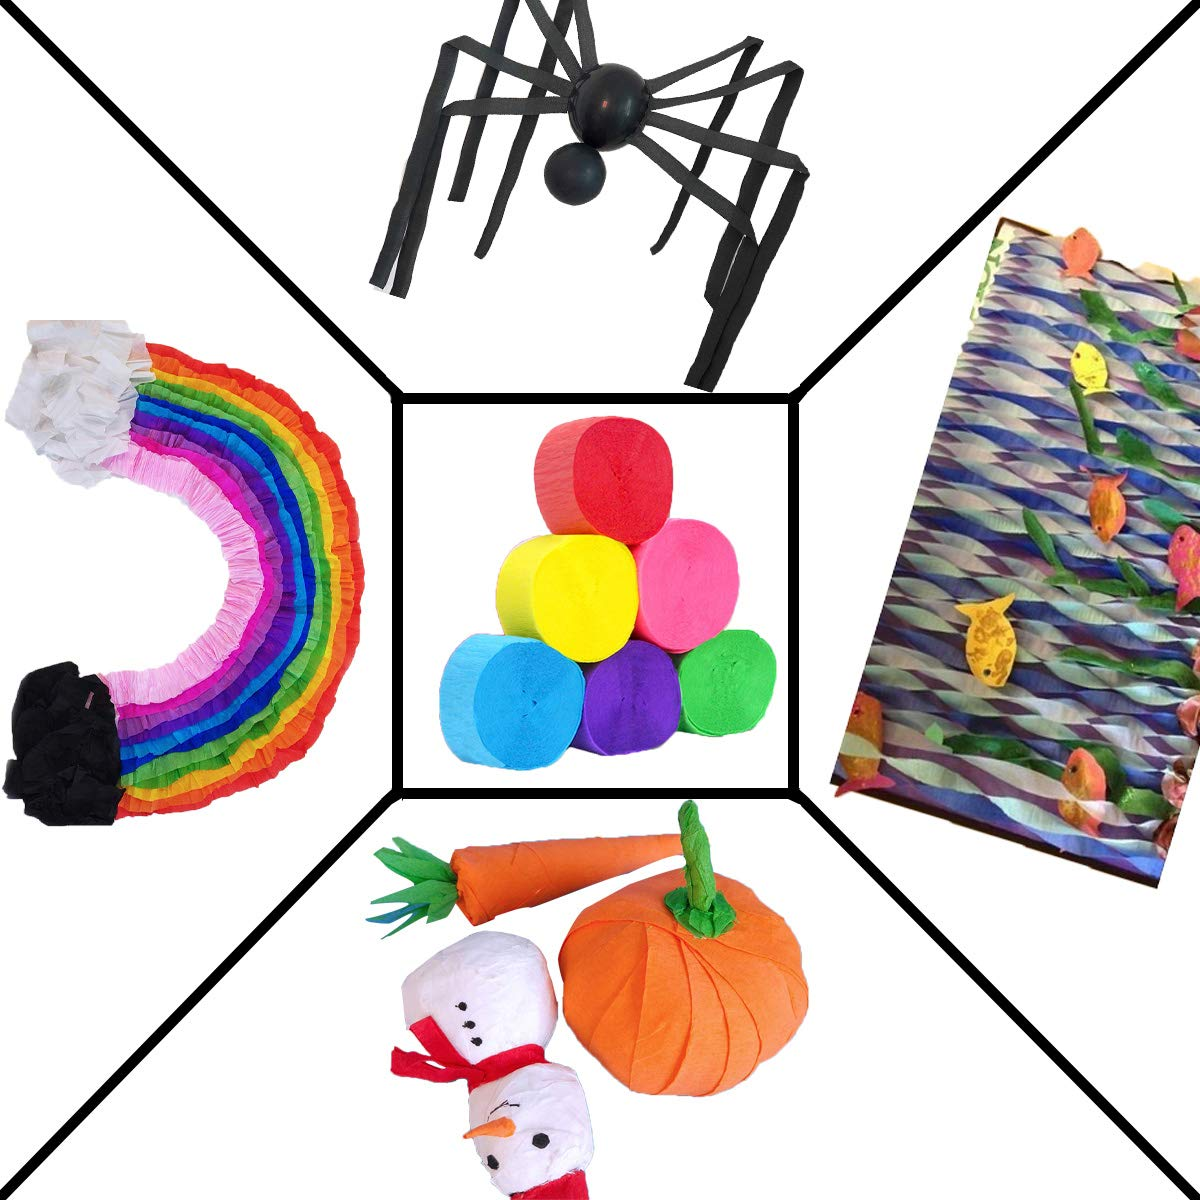 Mexican Festival Party D/écor Concert and Various Festivals Halloween Party 6 Rolls 59Yard Colorful Crepe Paper Streamers 0.05X9.8Yard//Roll Photo Booth Backdrop Decorations for Birthday Wedding